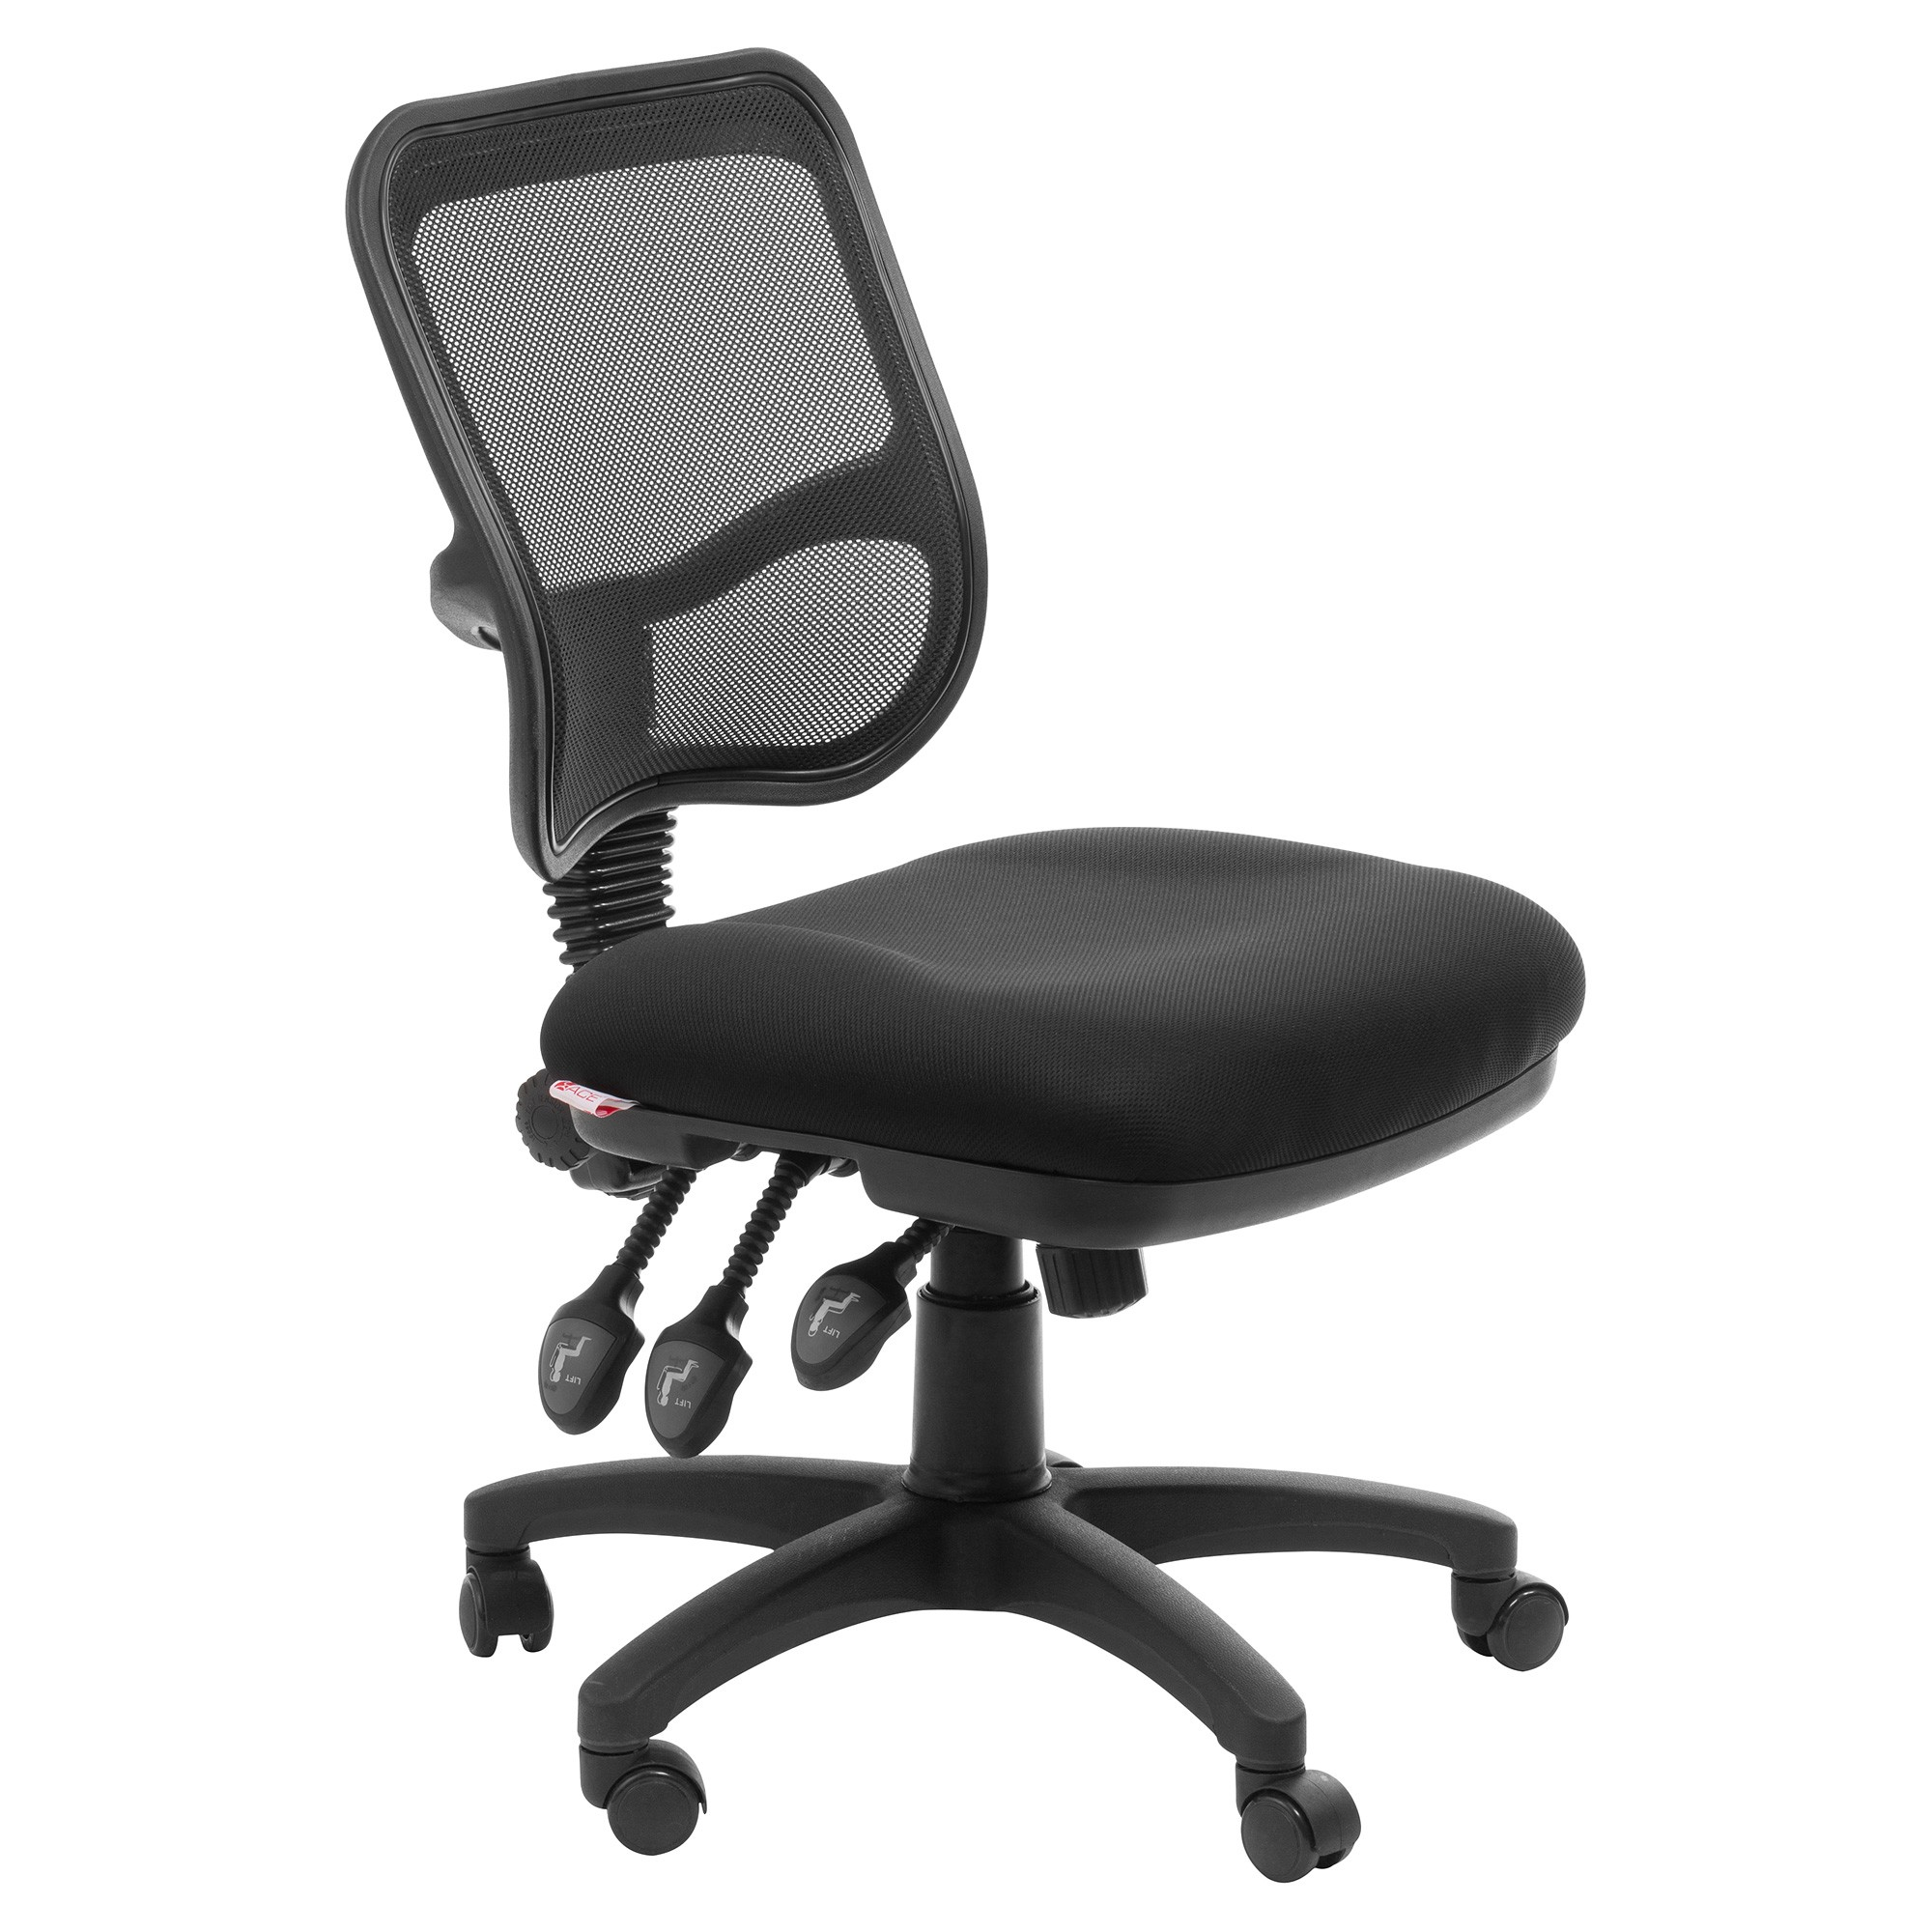 Eden 3 Level Adjustable Mesh Fabric Office Chair